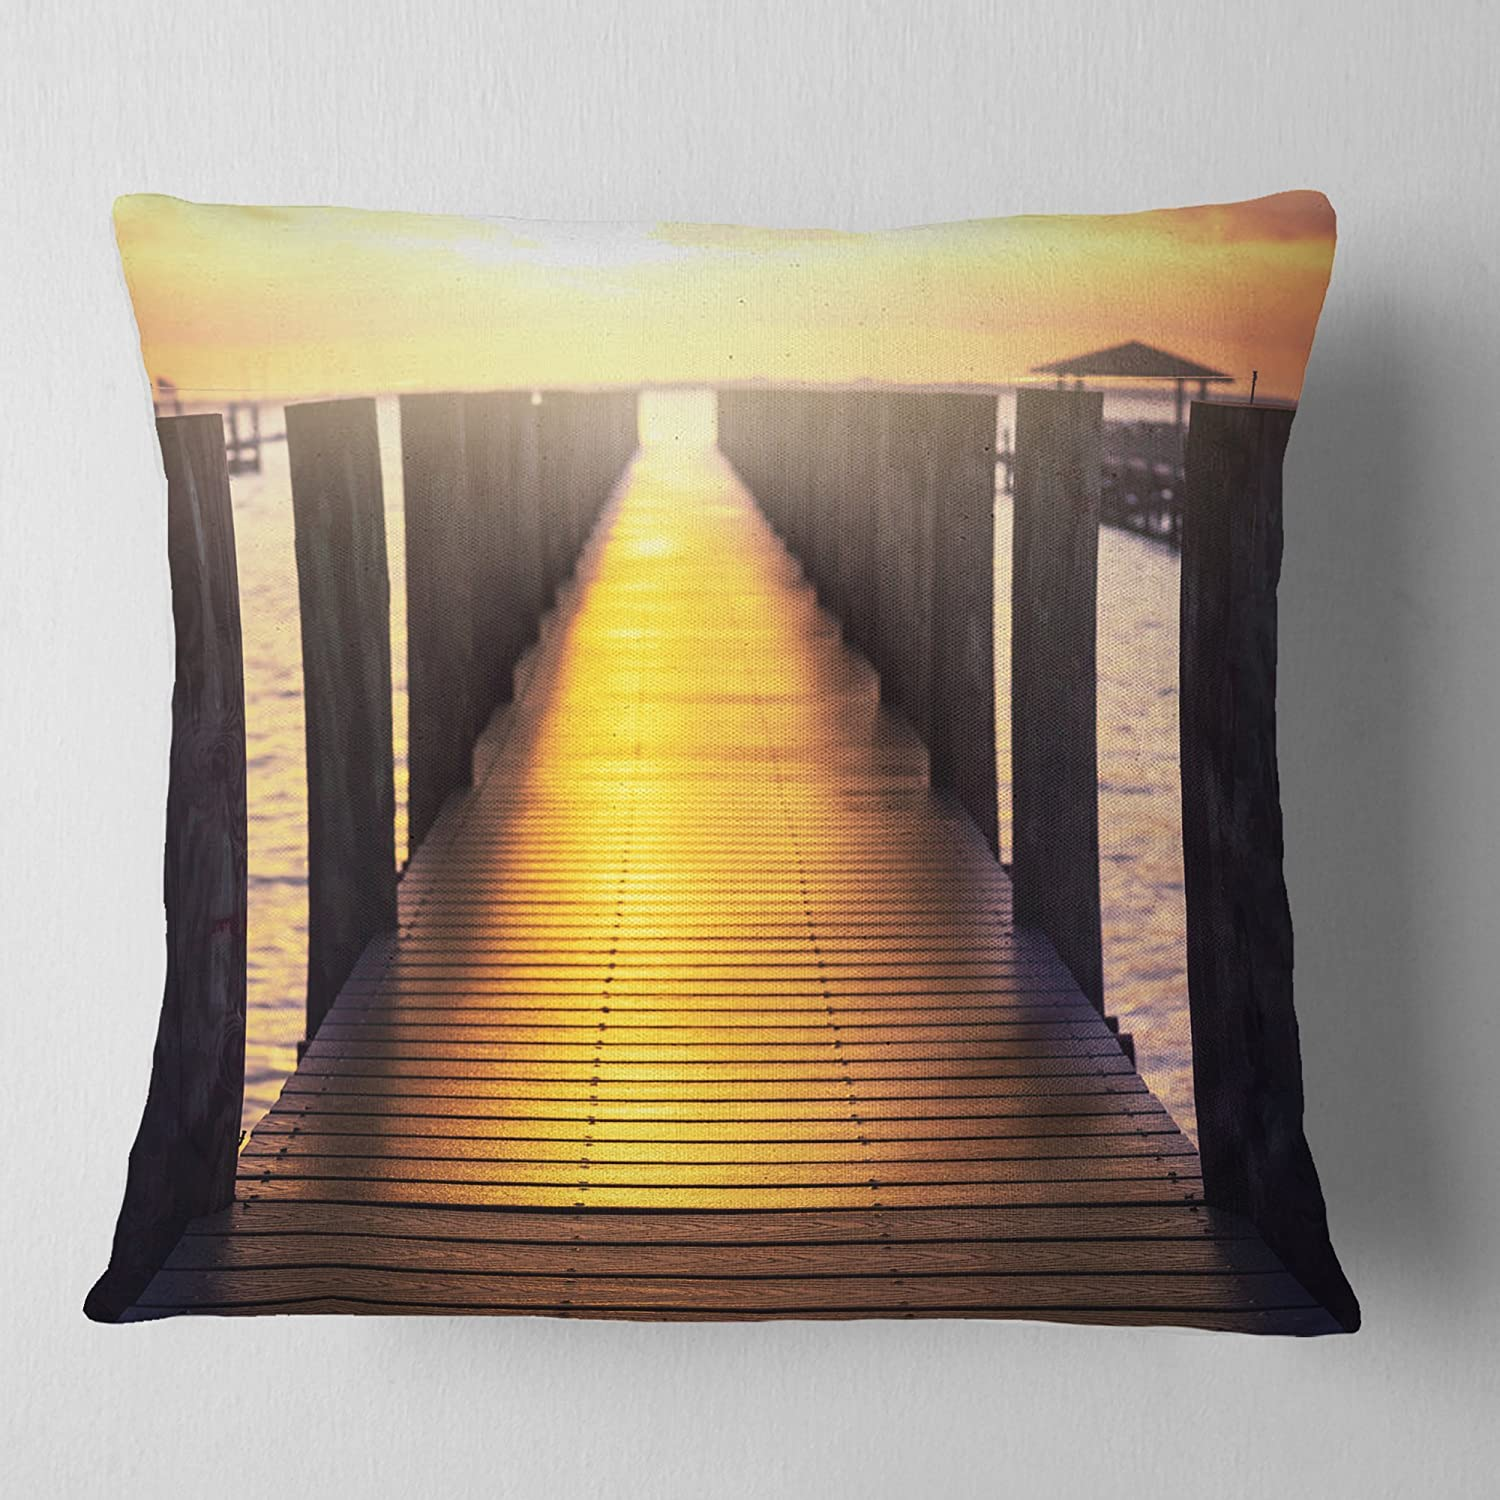 Designart CU12788-18-18 Sea Bridge with Sunset Reflection Seashore Cushion Cover for Living Room Insert Printed On Both Side x 18 in in Sofa Throw Pillow 18 in